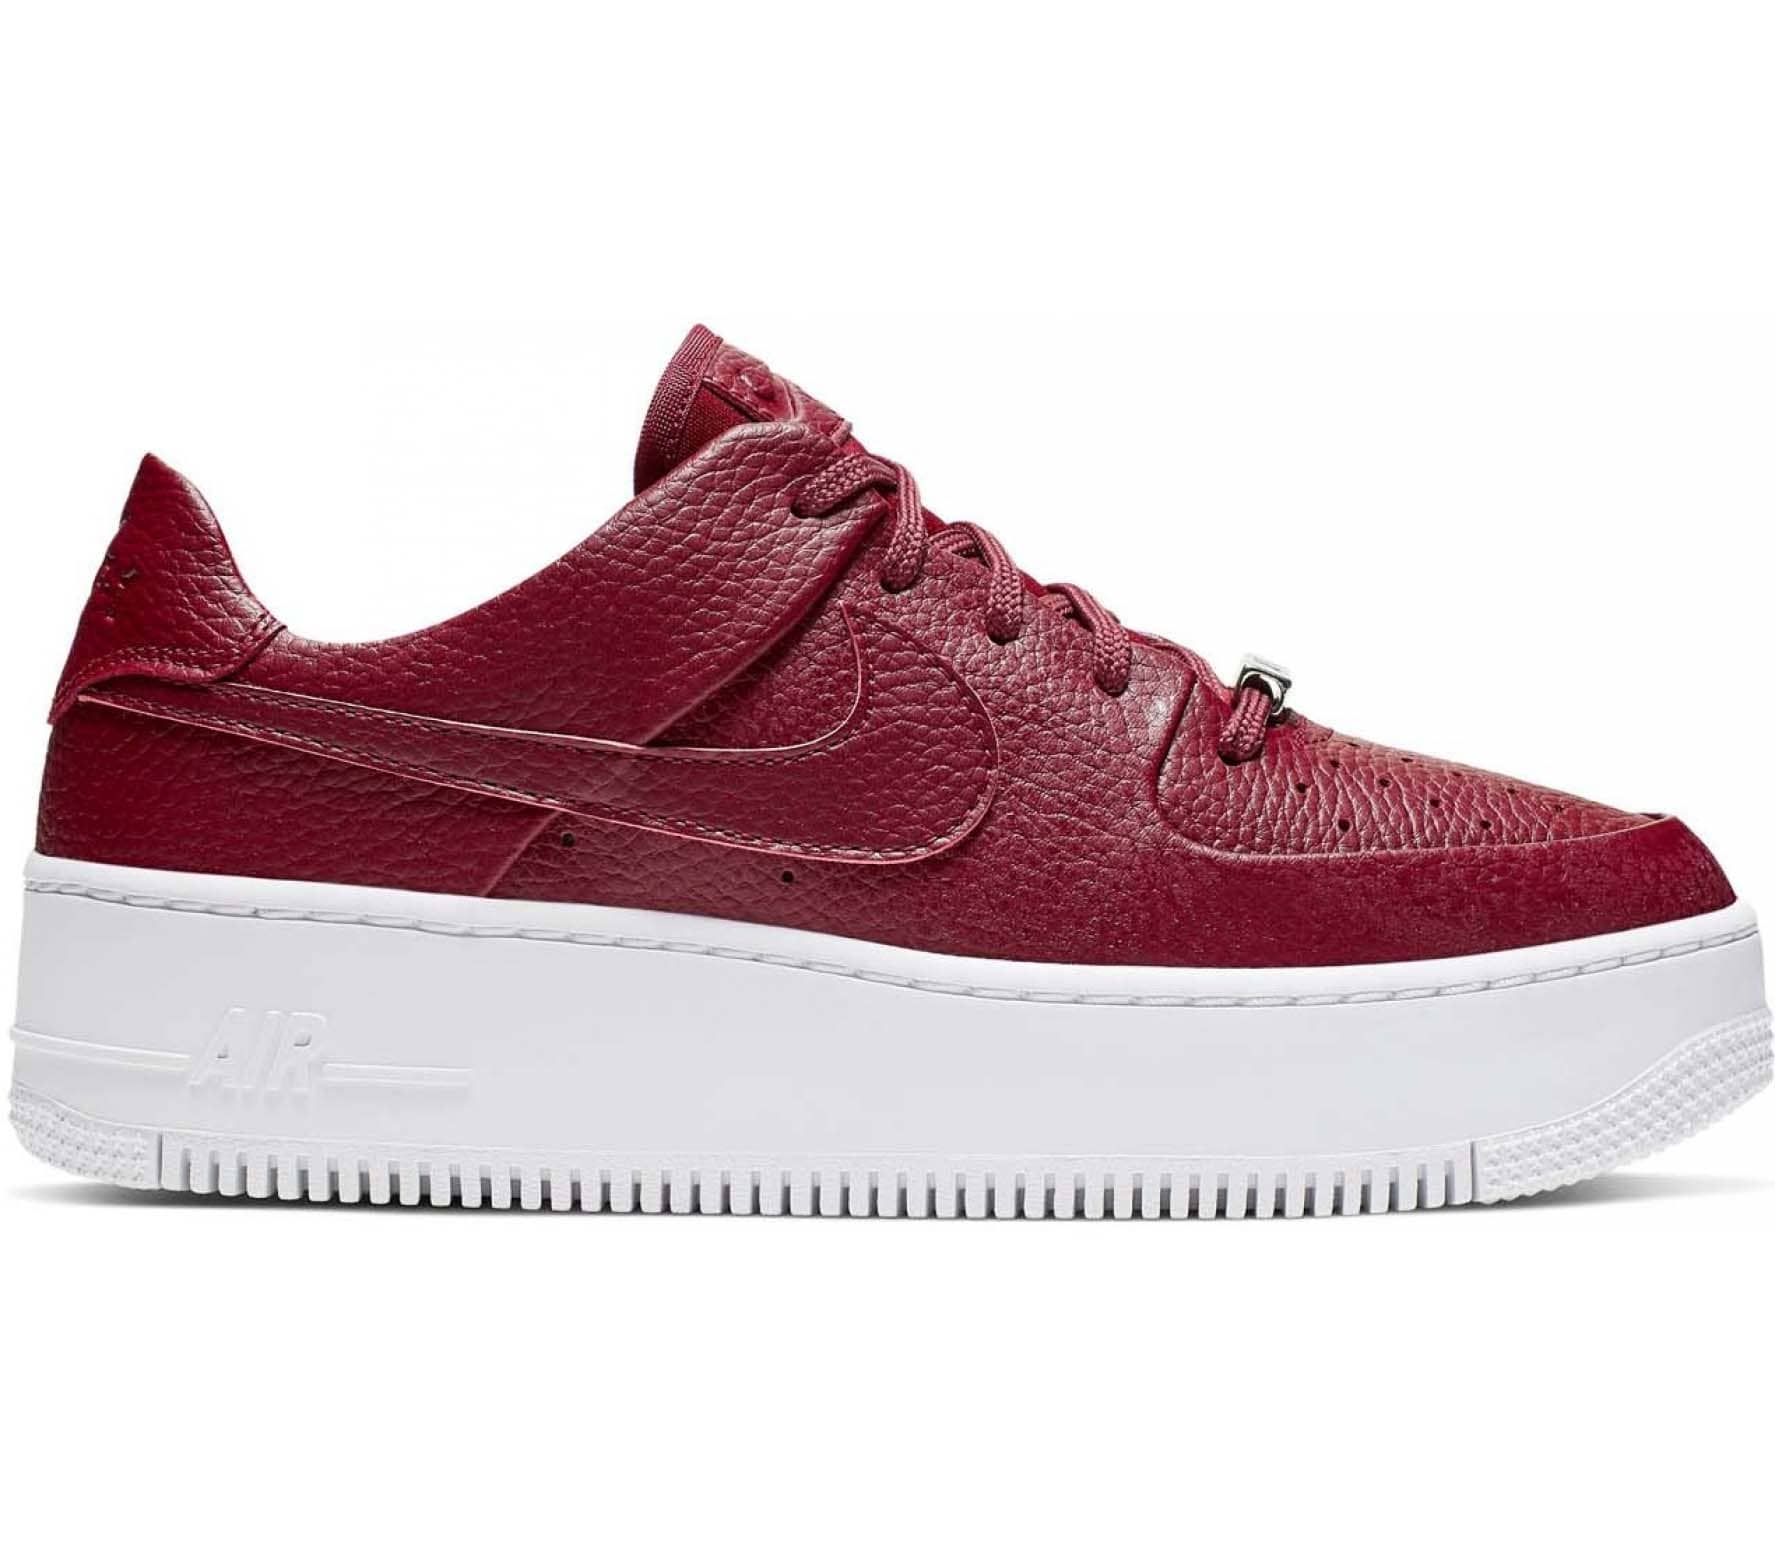 Nike Sportswear Air Force 1 Sage Low Damen Sneaker rot